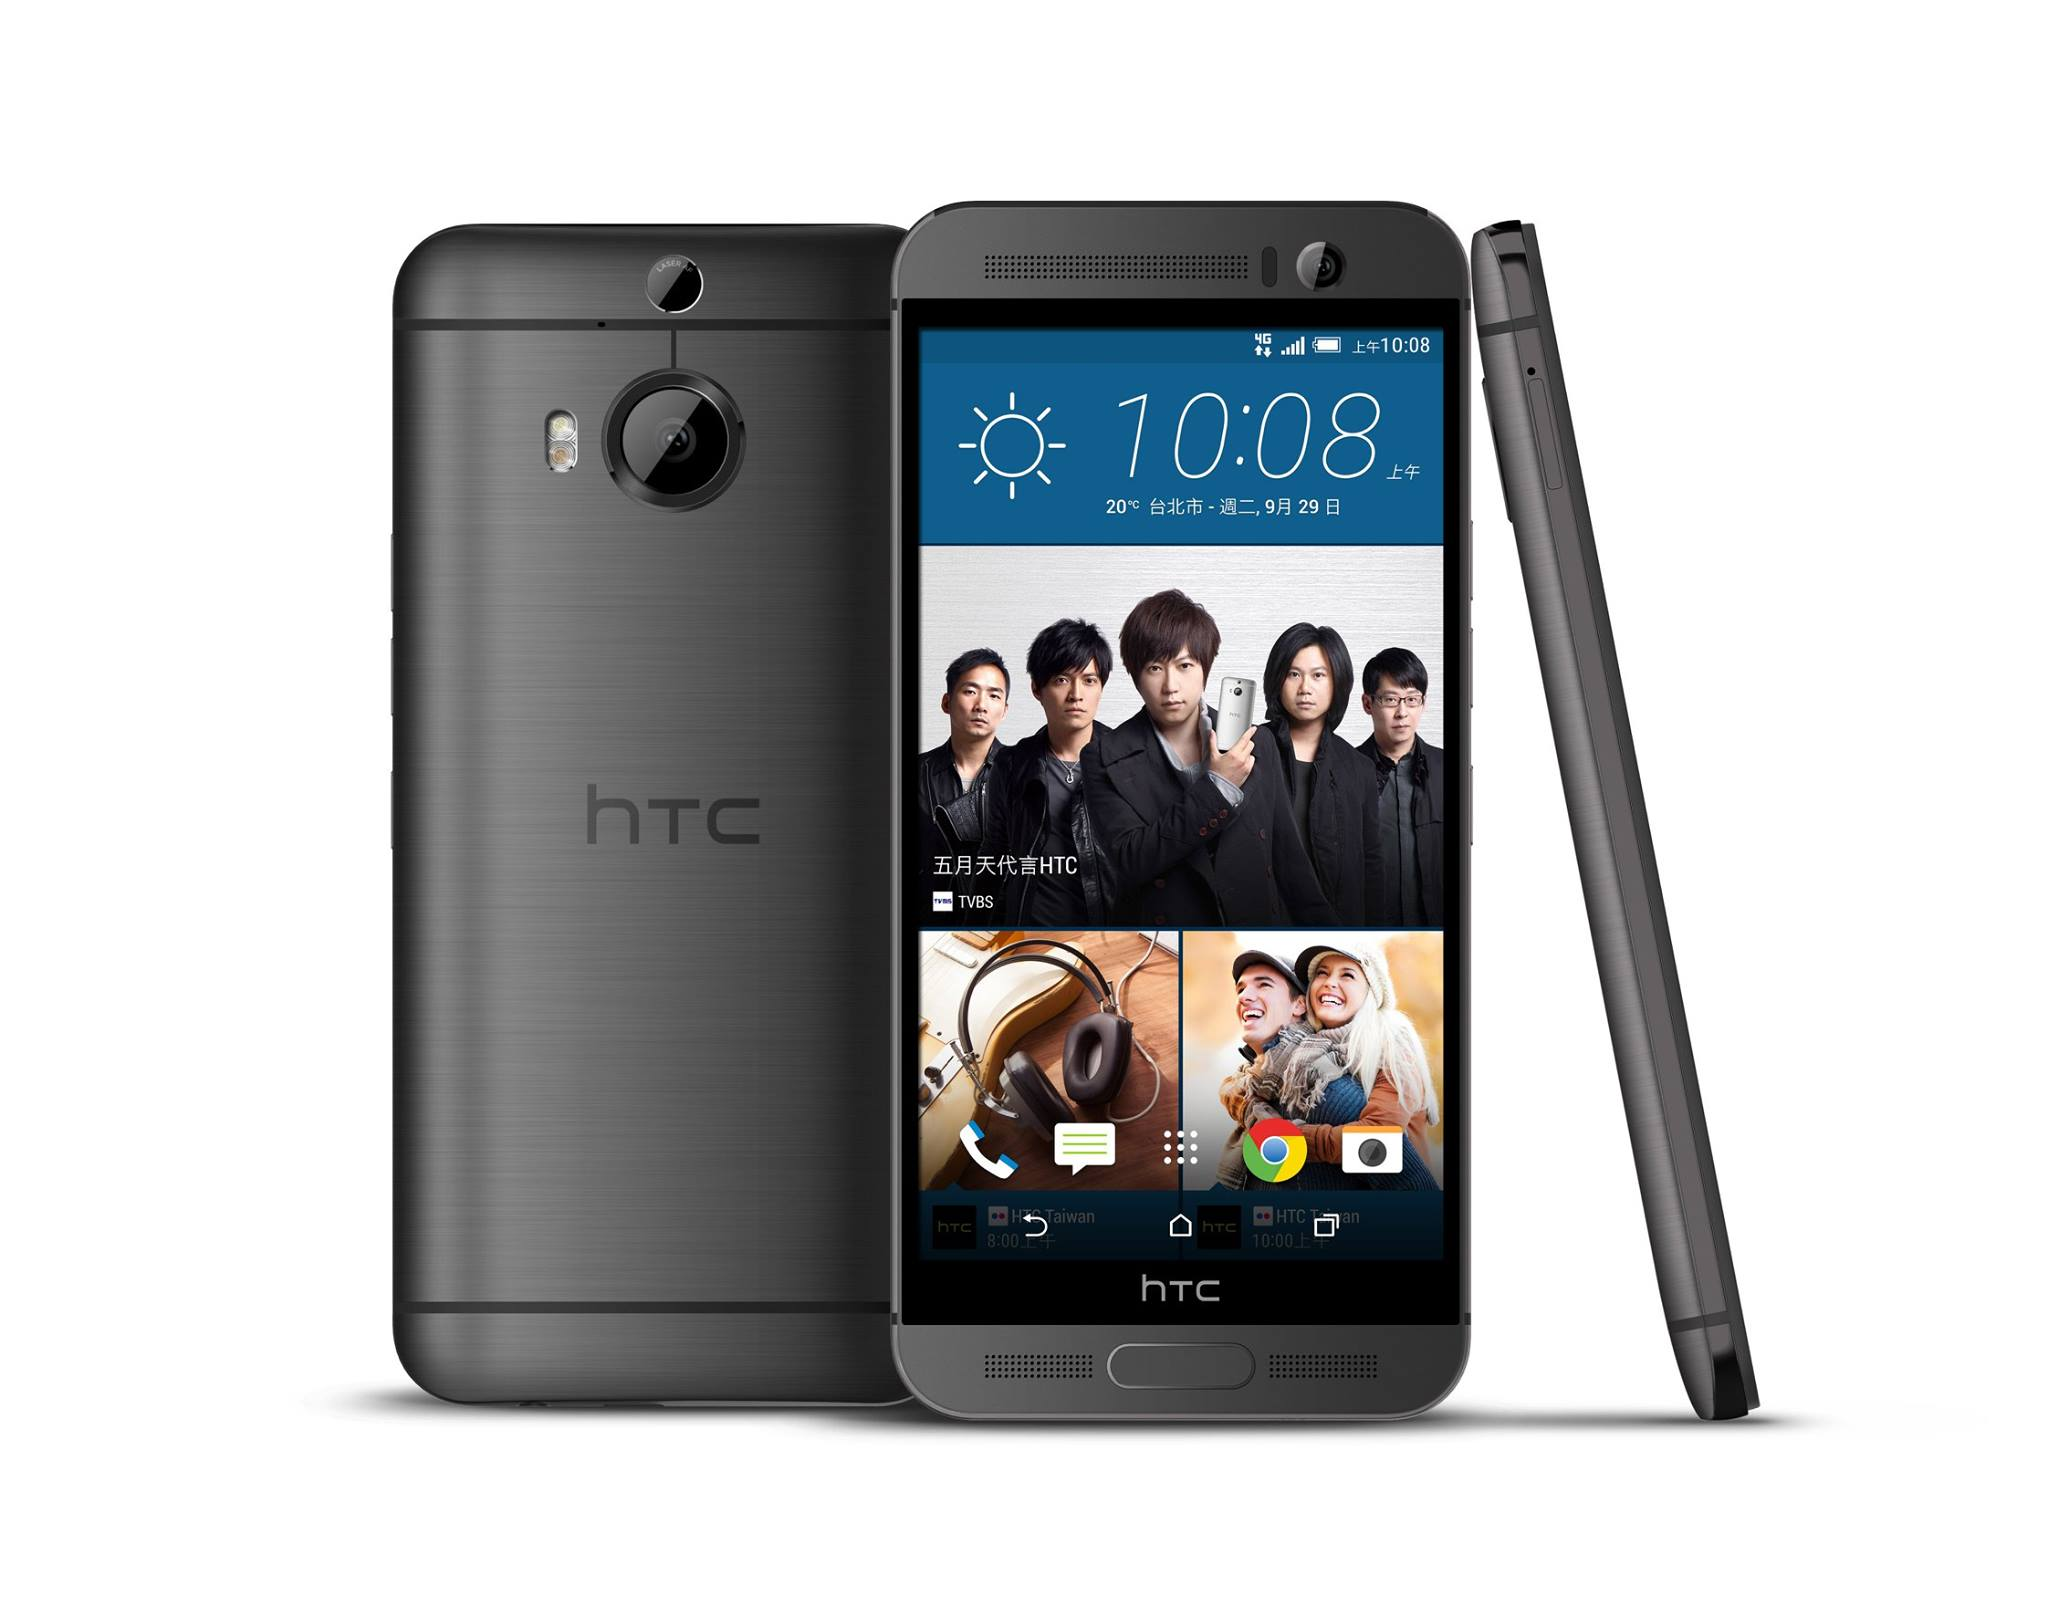 New-HTC-One-M9-with-21-MP-OIS-camera-PDAF-and-laser-AF